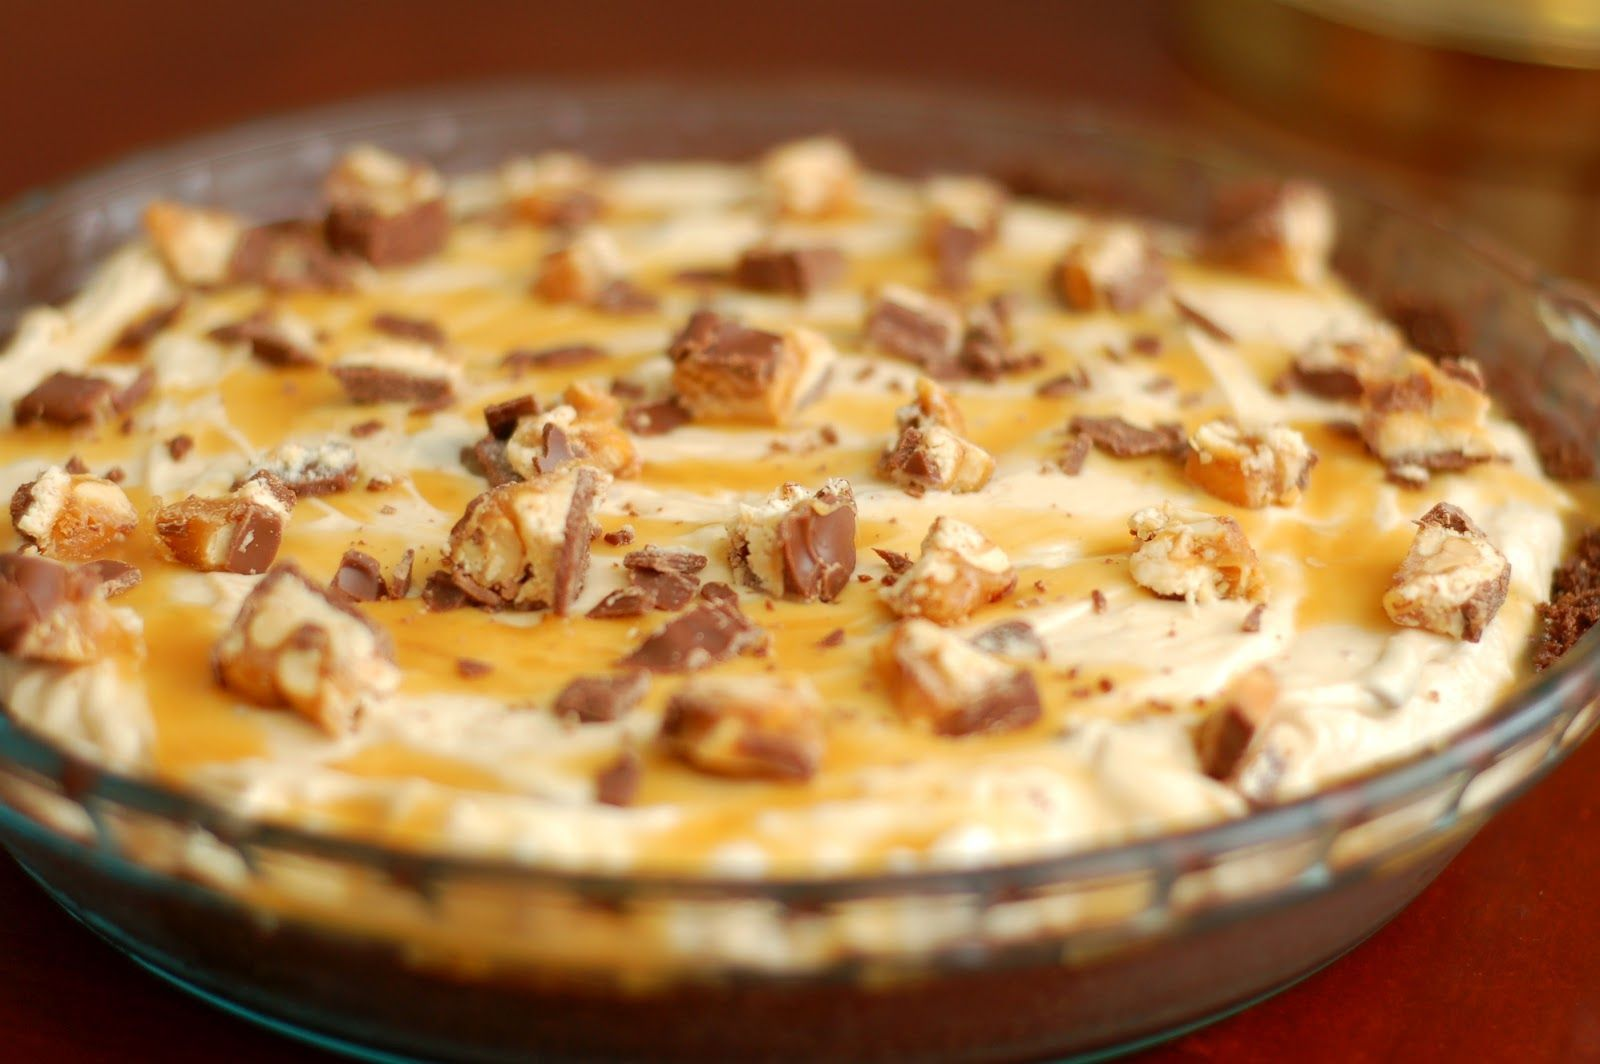 {A Kitchen Addiction} Snickers Cheesecake Pie #snickerscheesecake {A Kitchen Addiction} Snickers Cheesecake Pie #snickerscheesecake